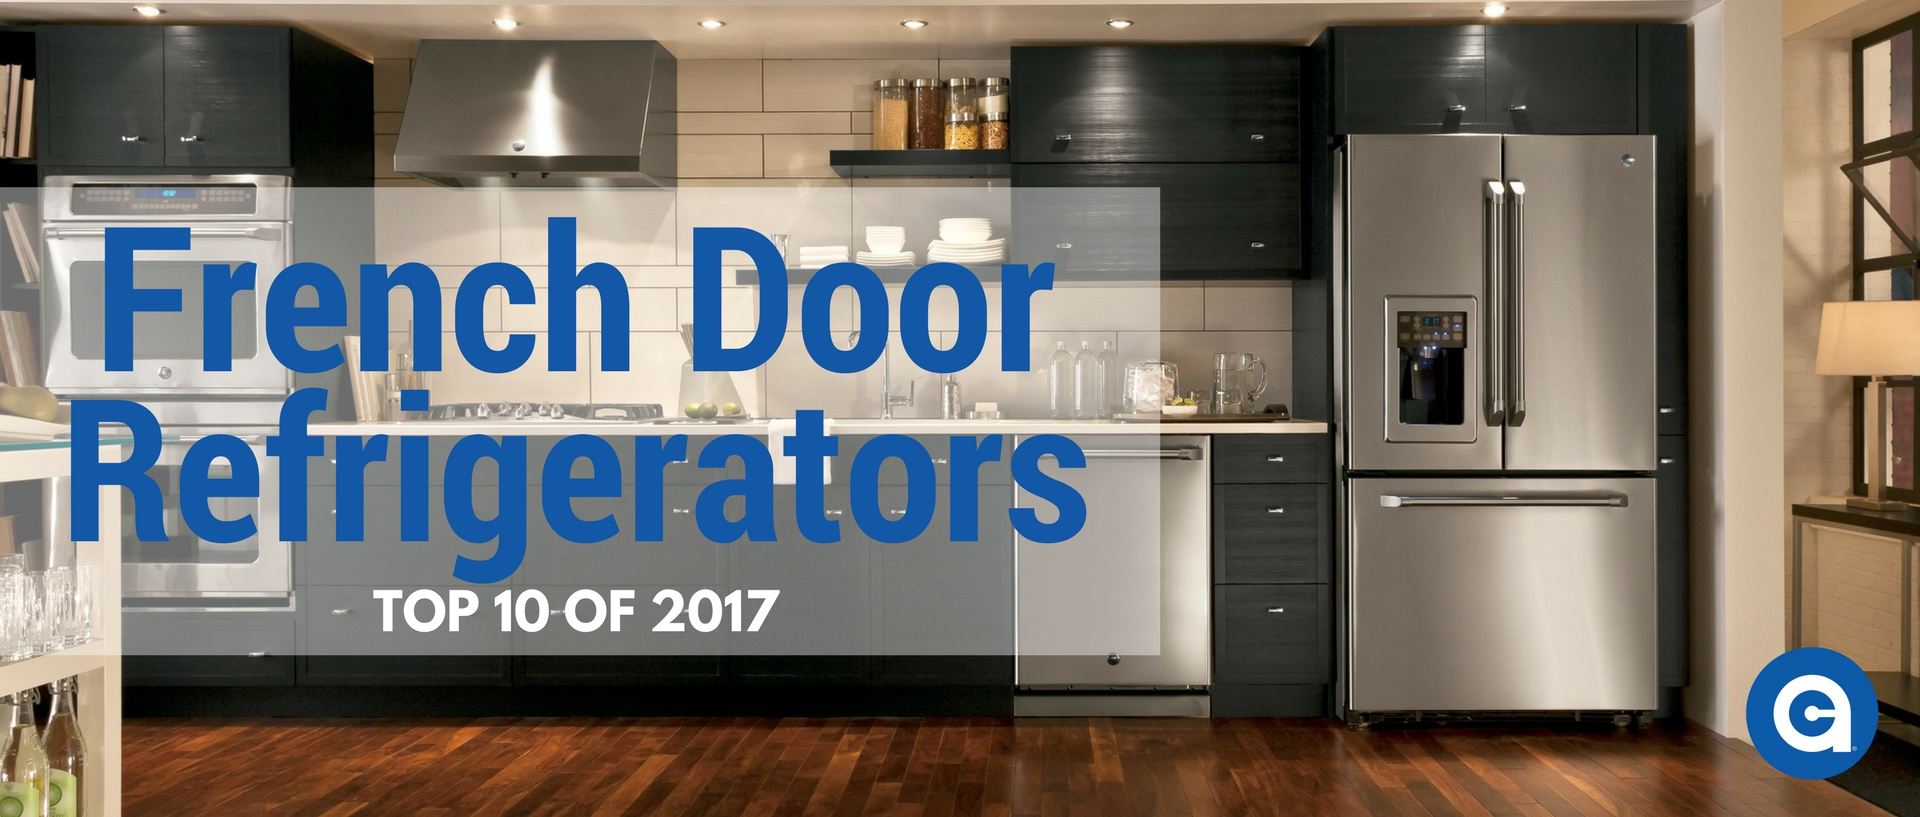 Top 10 French Door Refrigerators Of 2017